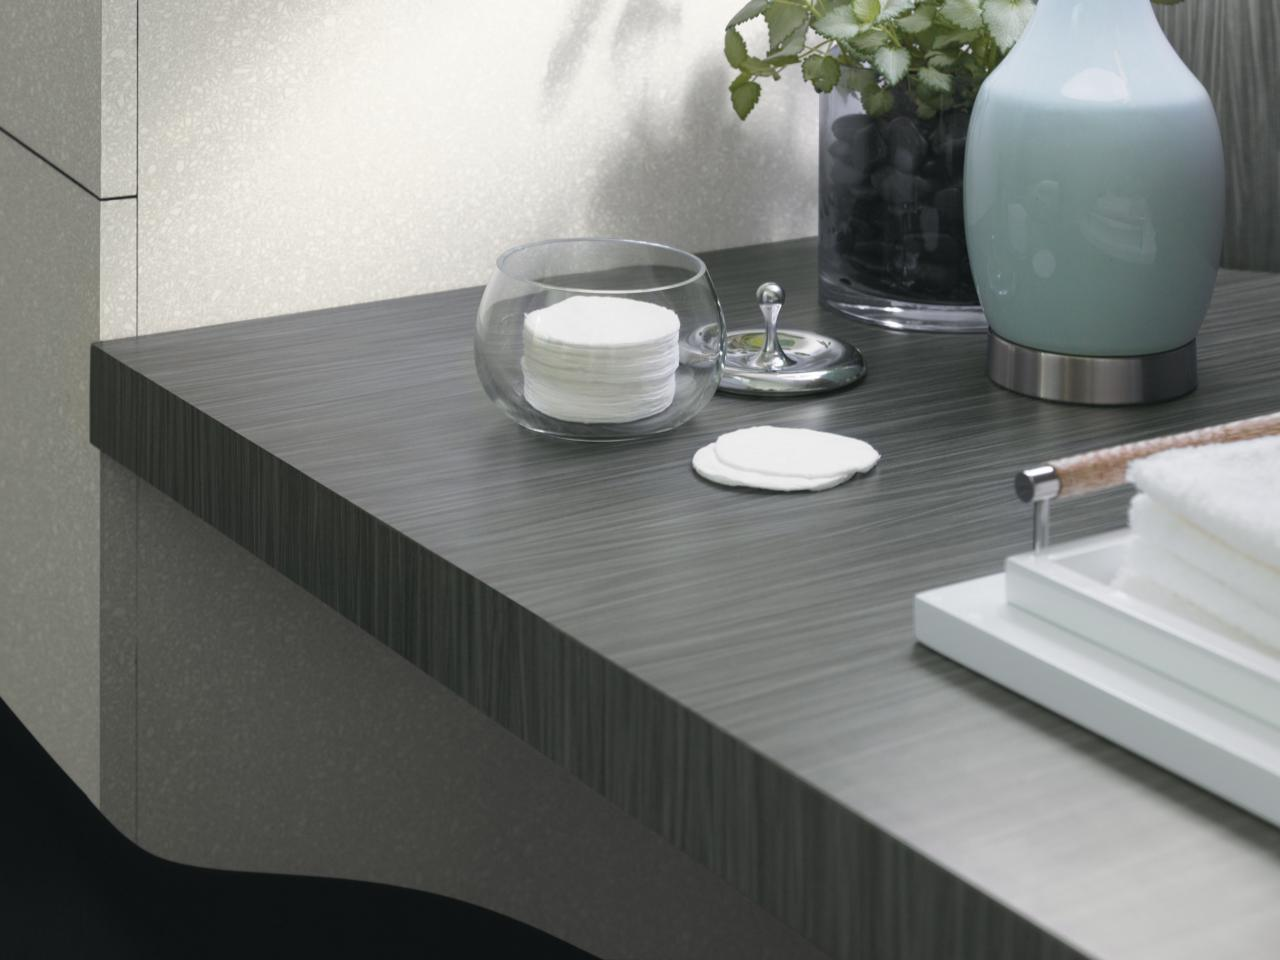 Superior Practical, Durable Surfaces. High Pressure Laminate Countertops ...